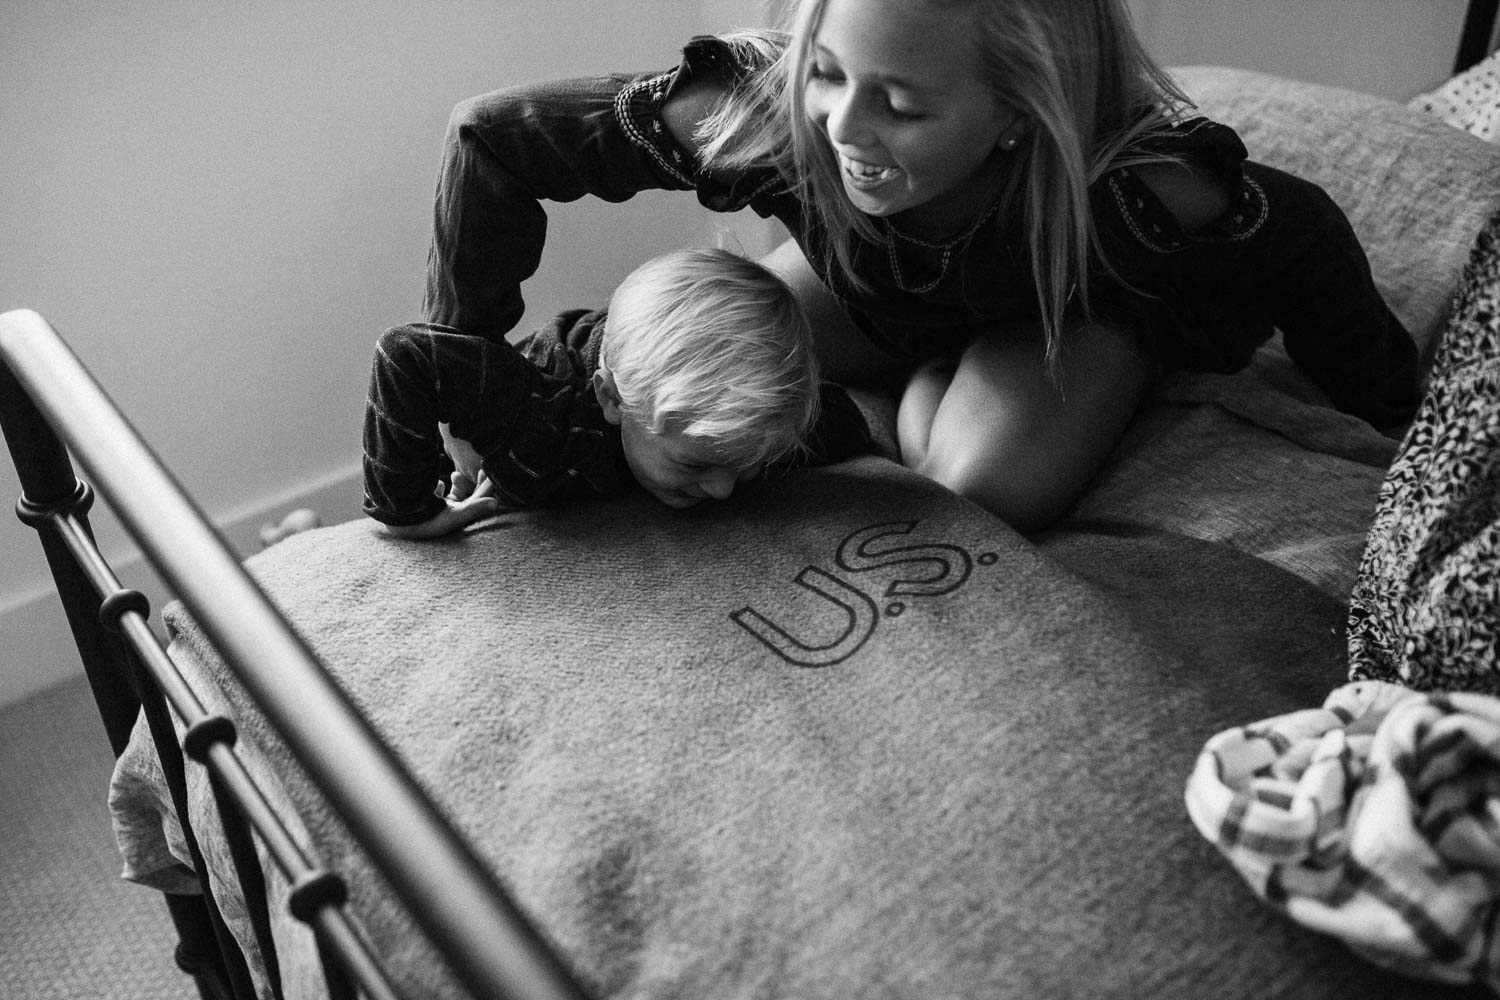 candid-black-and-white-photo-of-sister-helping-brother-up-onto-bed-eniciniats-ca